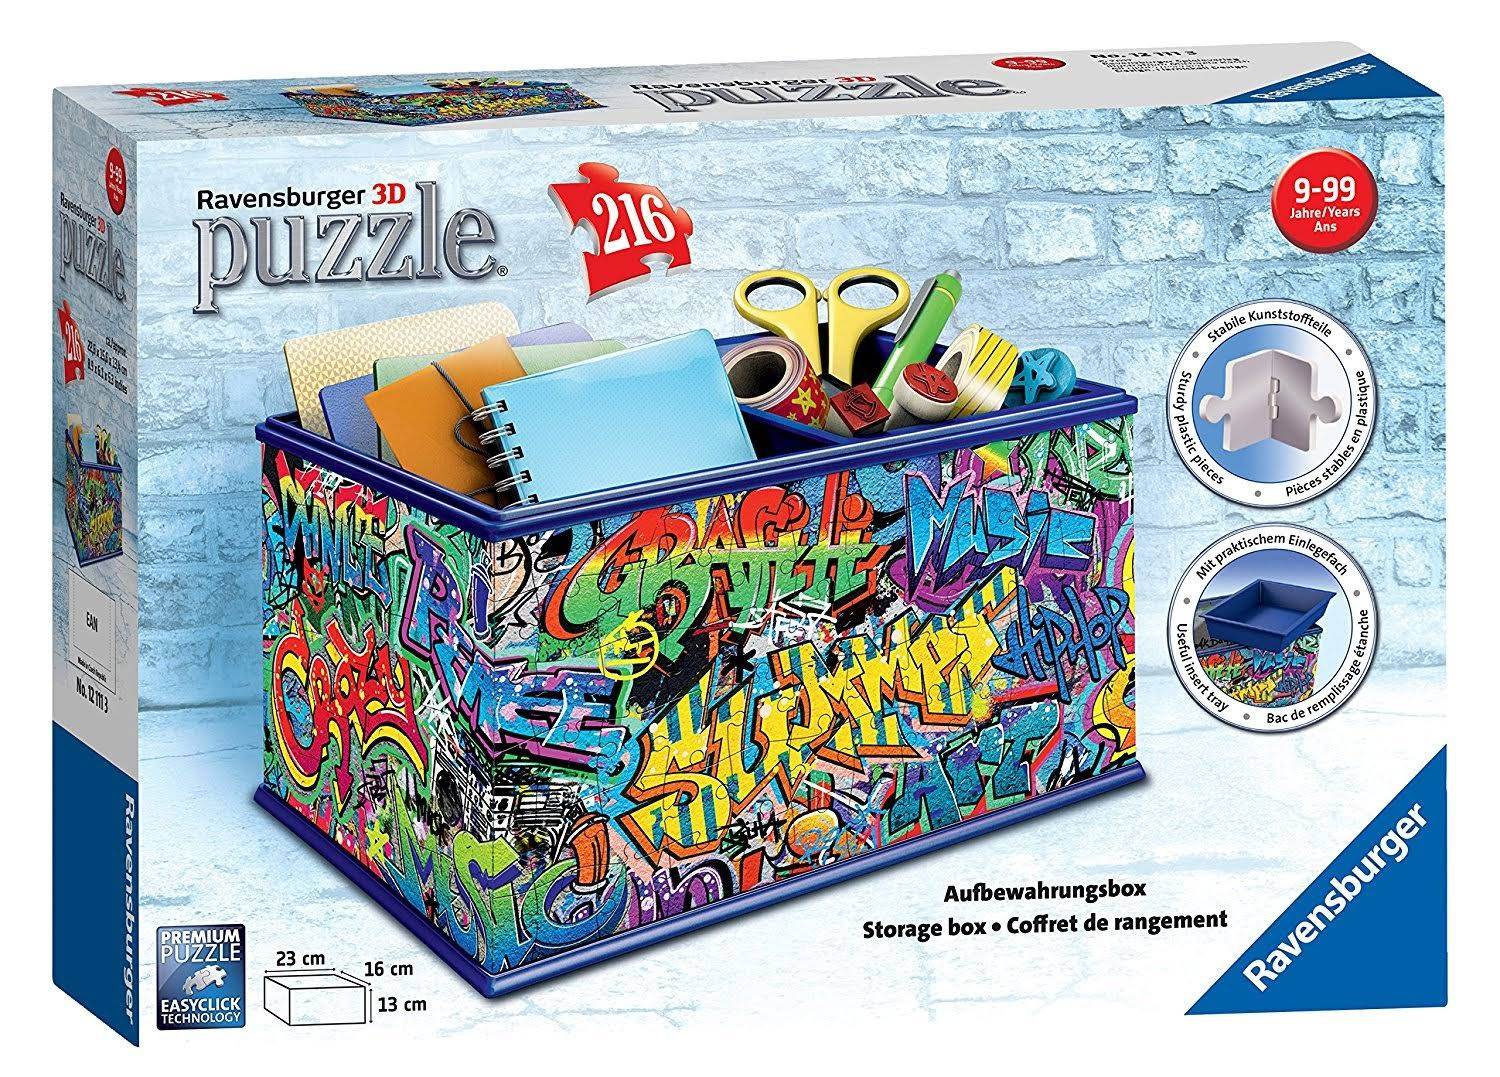 Ravensburger Graffiti Storage Box 3D Jigsaw Puzzle